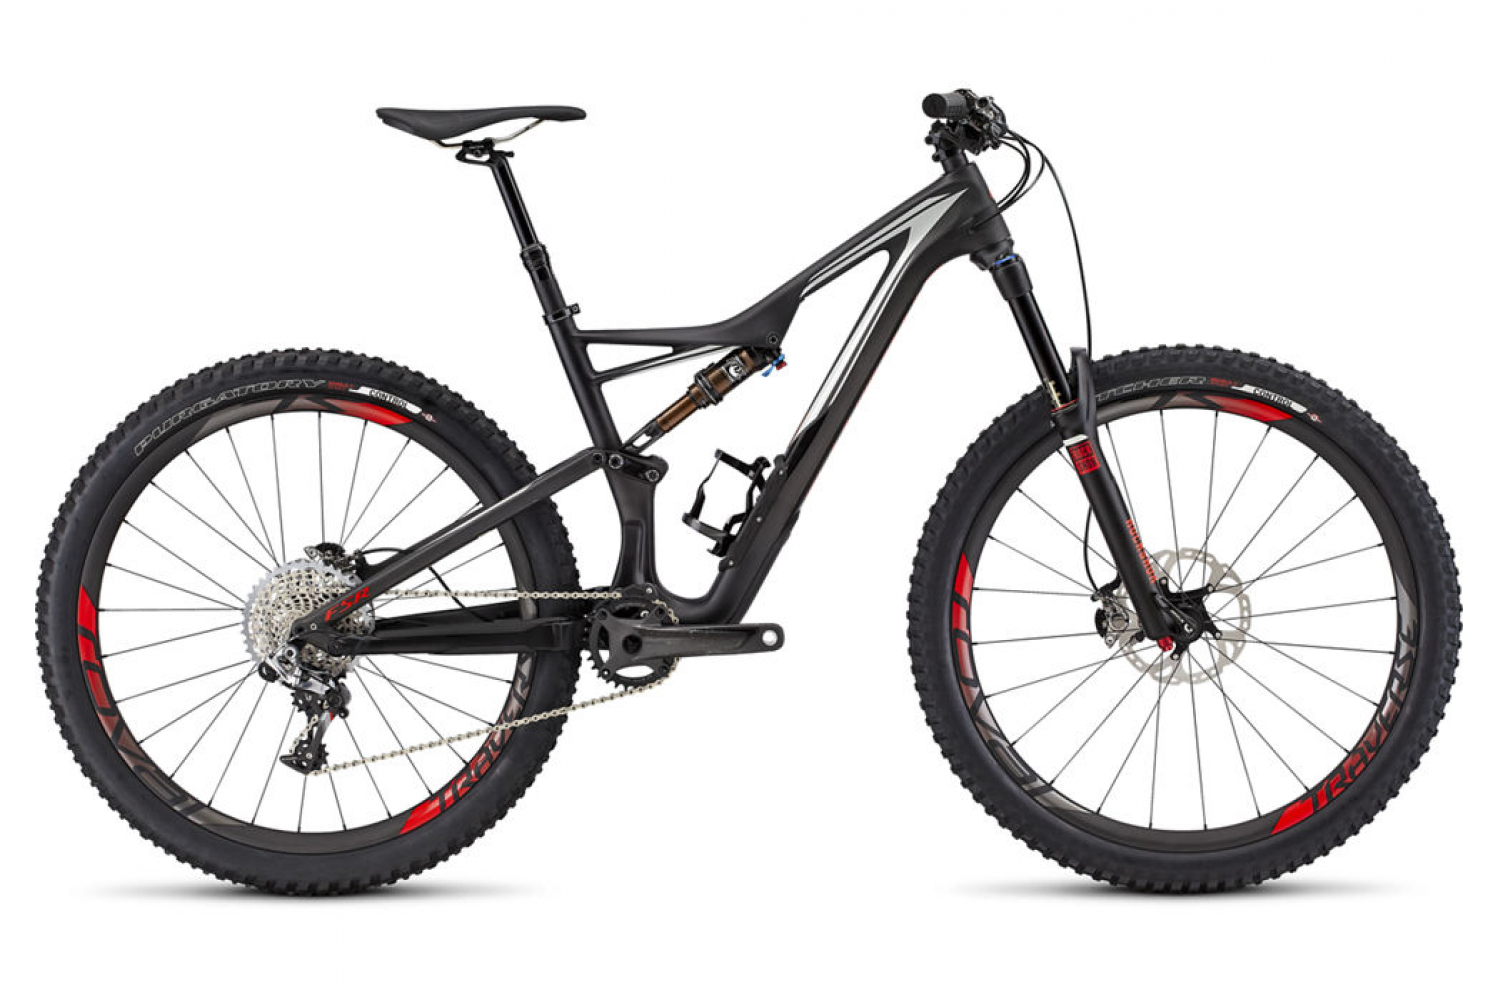 S-WORKS горные велосипеды Specialized S-Works Stumpjumper FSR 650B 2016 Артикул 97516-0102, 97516-0103